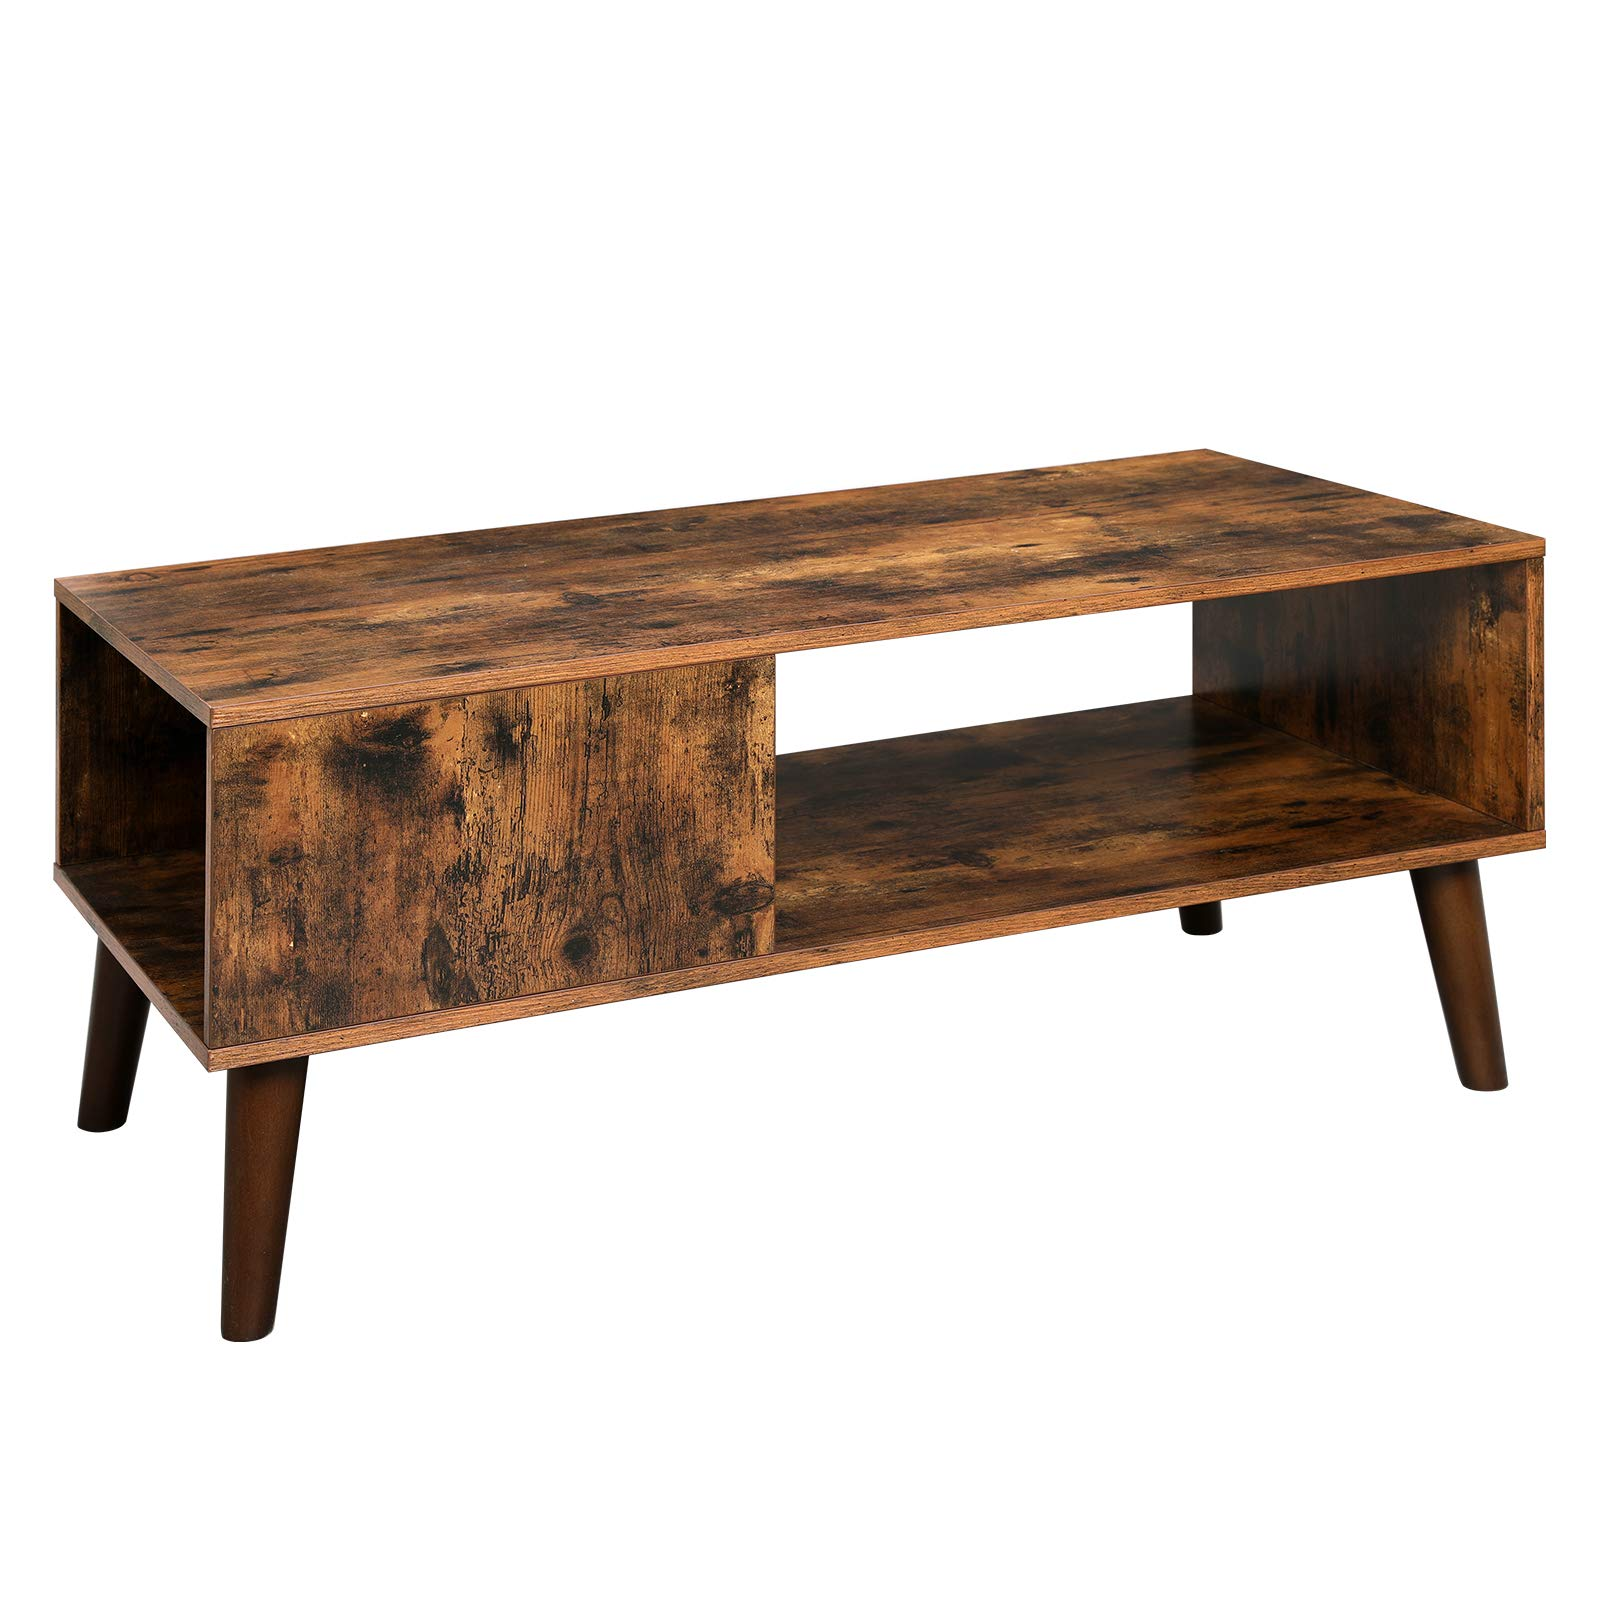 VASAGLE Retro Coffee Table, Cocktail Table, Mid-Century Modern Accent Table with Storage Shelf for Living Room, Reception, Easy Assembly, Brown ULCT09BX by VASAGLE